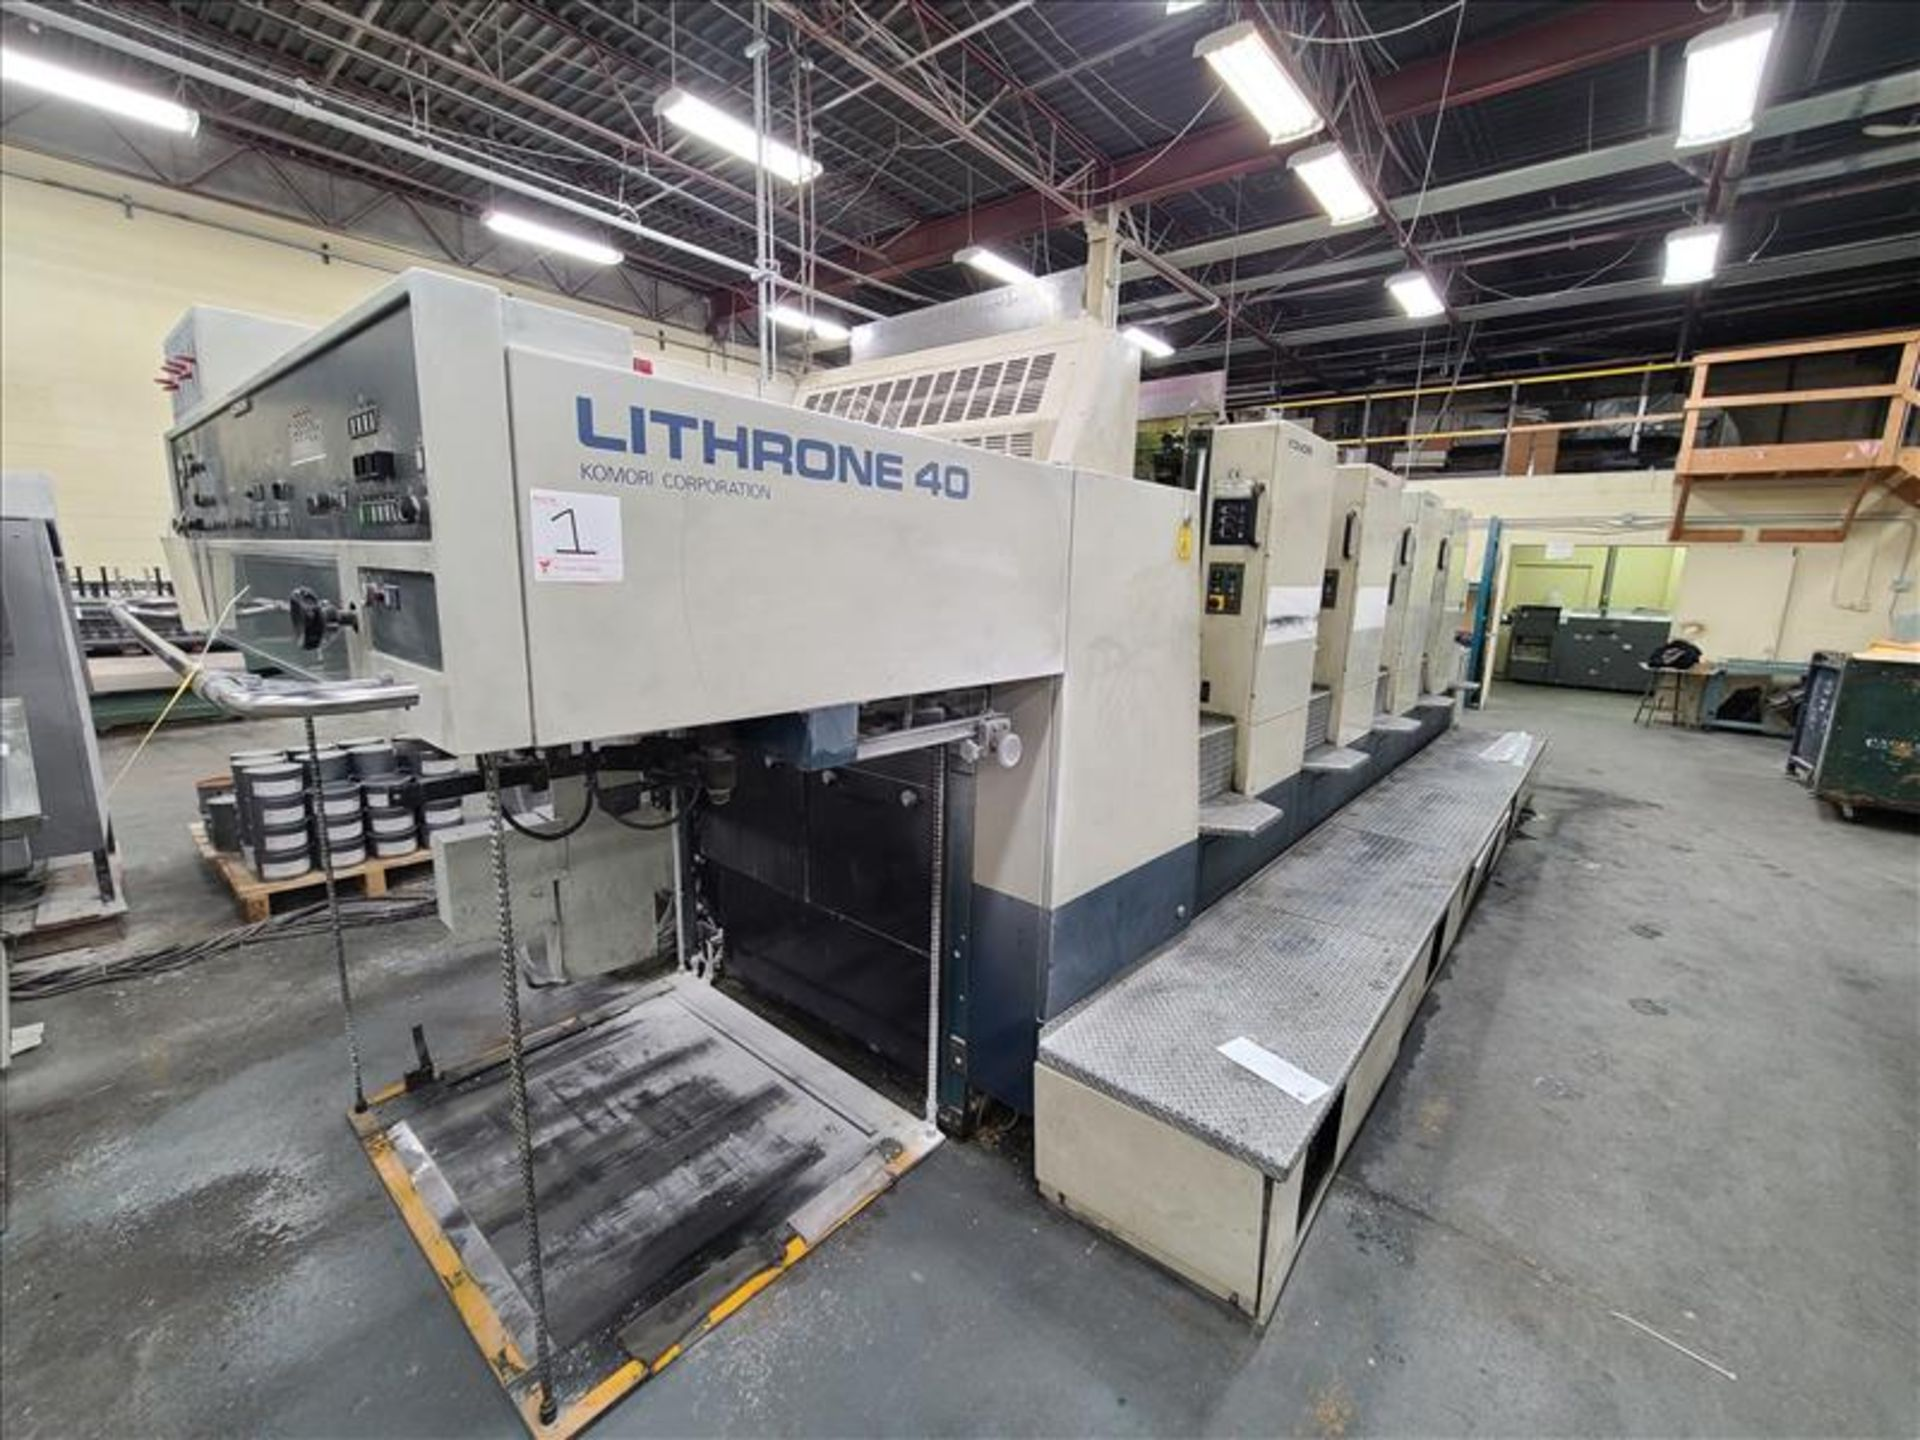 Komori 4-color offset printing press, Series Lithrone 40, model L-440, S/N.2202 approx. 68 - Image 2 of 22